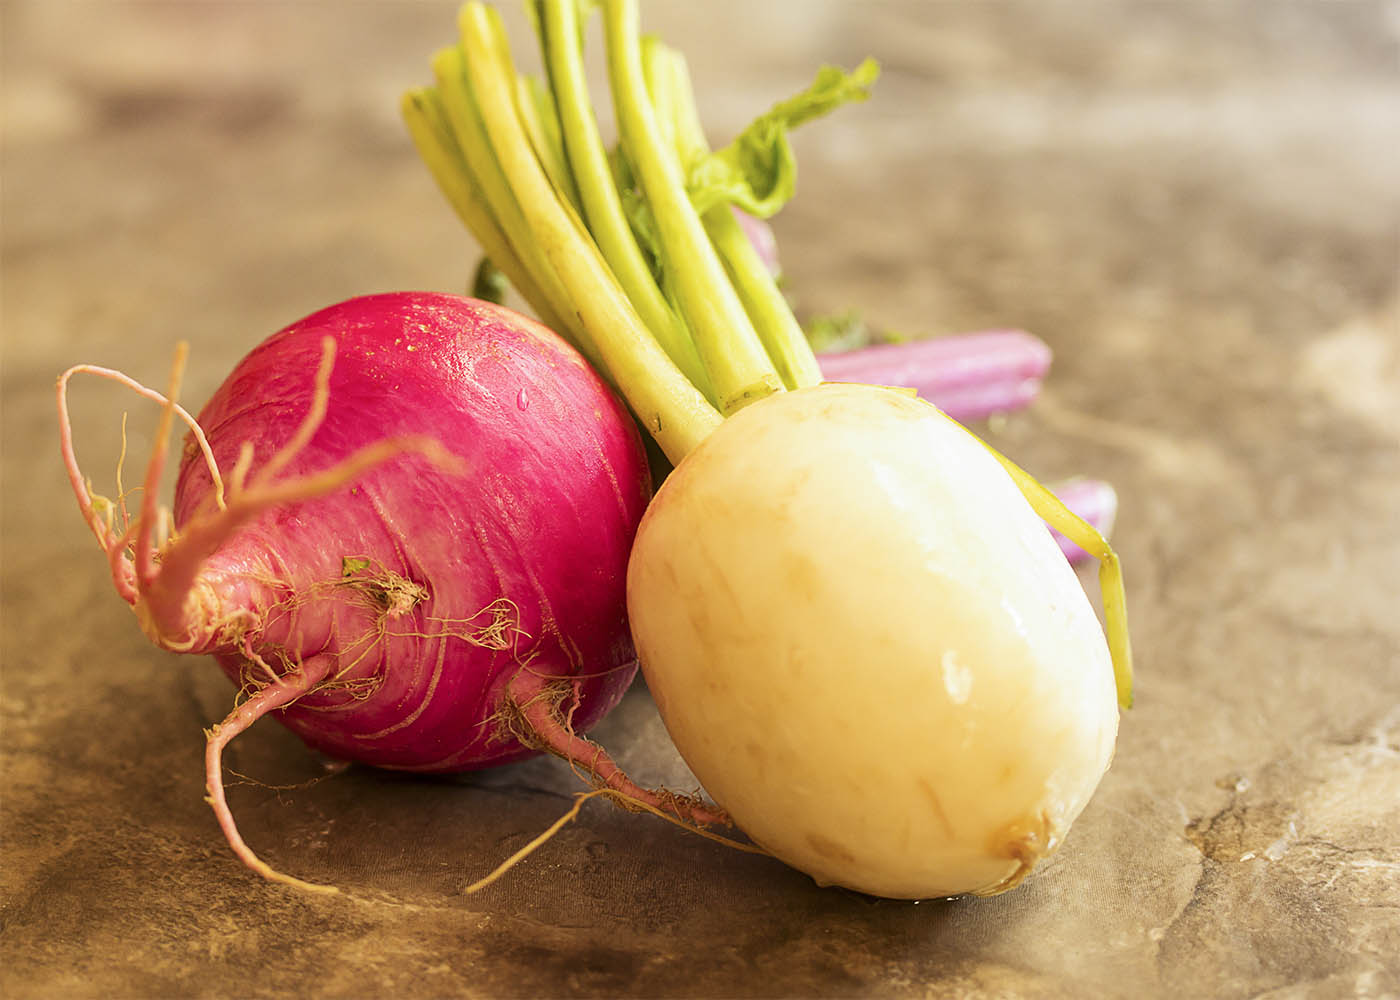 Two turnips on a table - one white turnip and one red turnip.